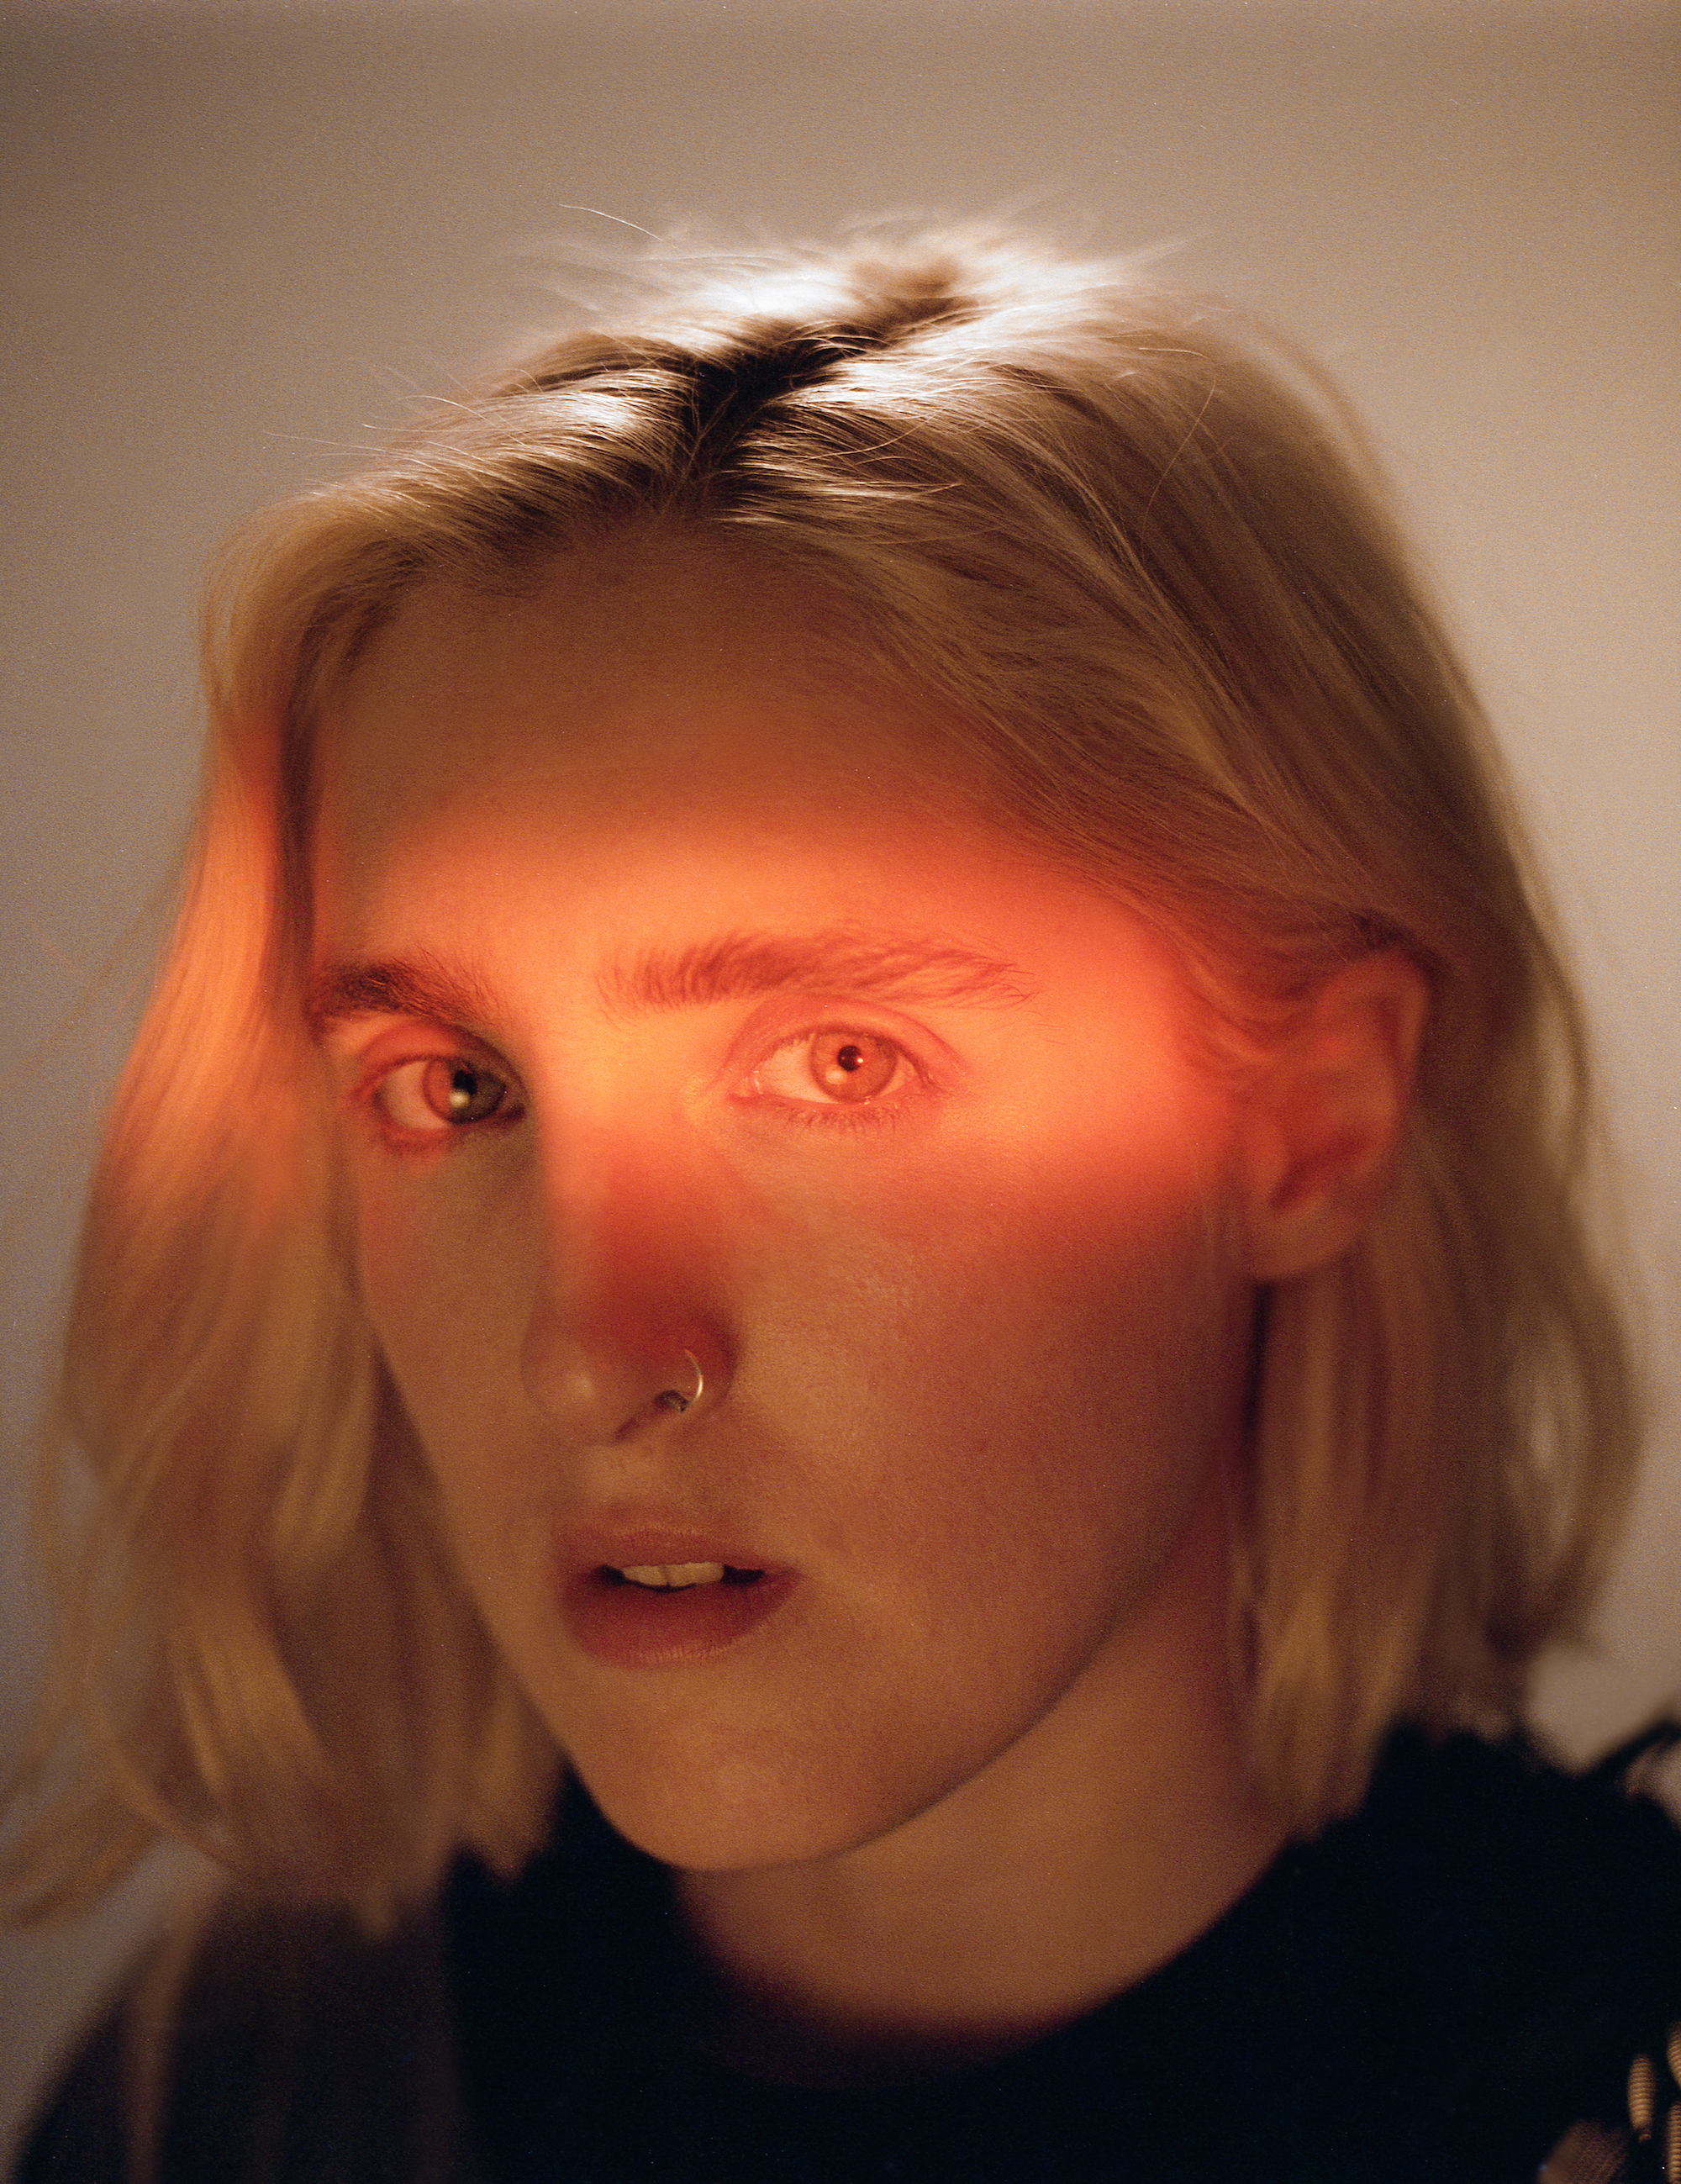 Singer Shura in the Omega Zine in the Summer 19 issue of Wonderland close-up